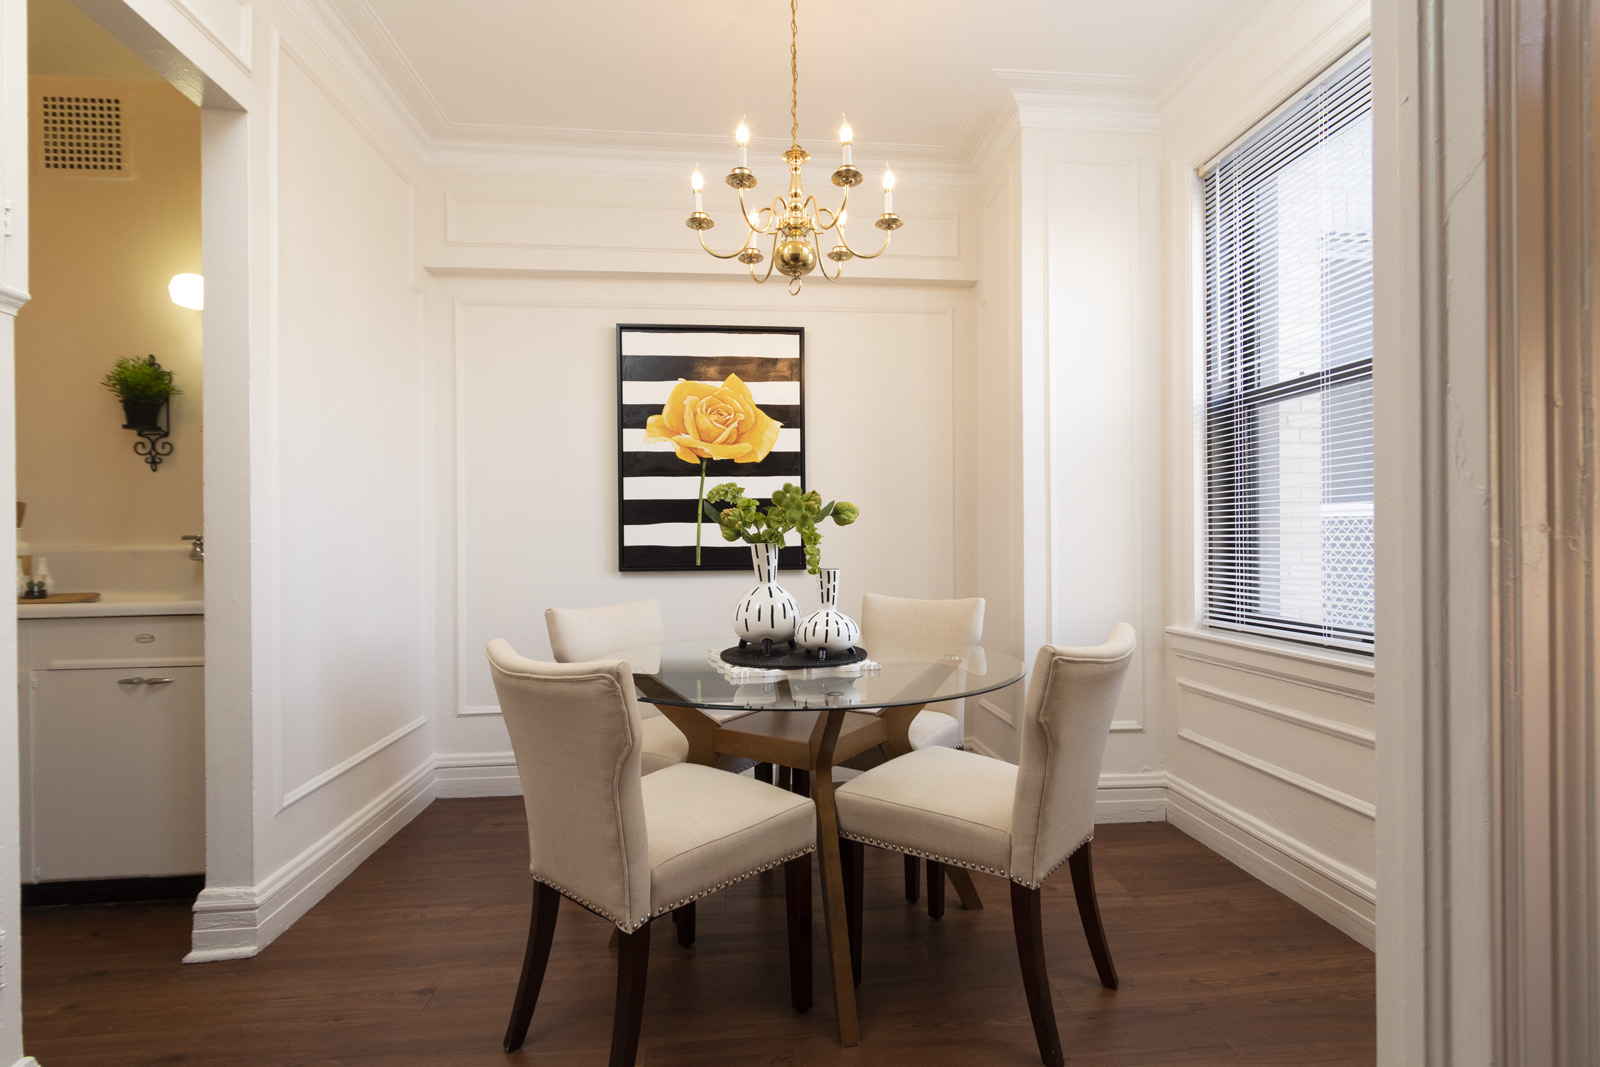 Hawthorne-Dining room-1